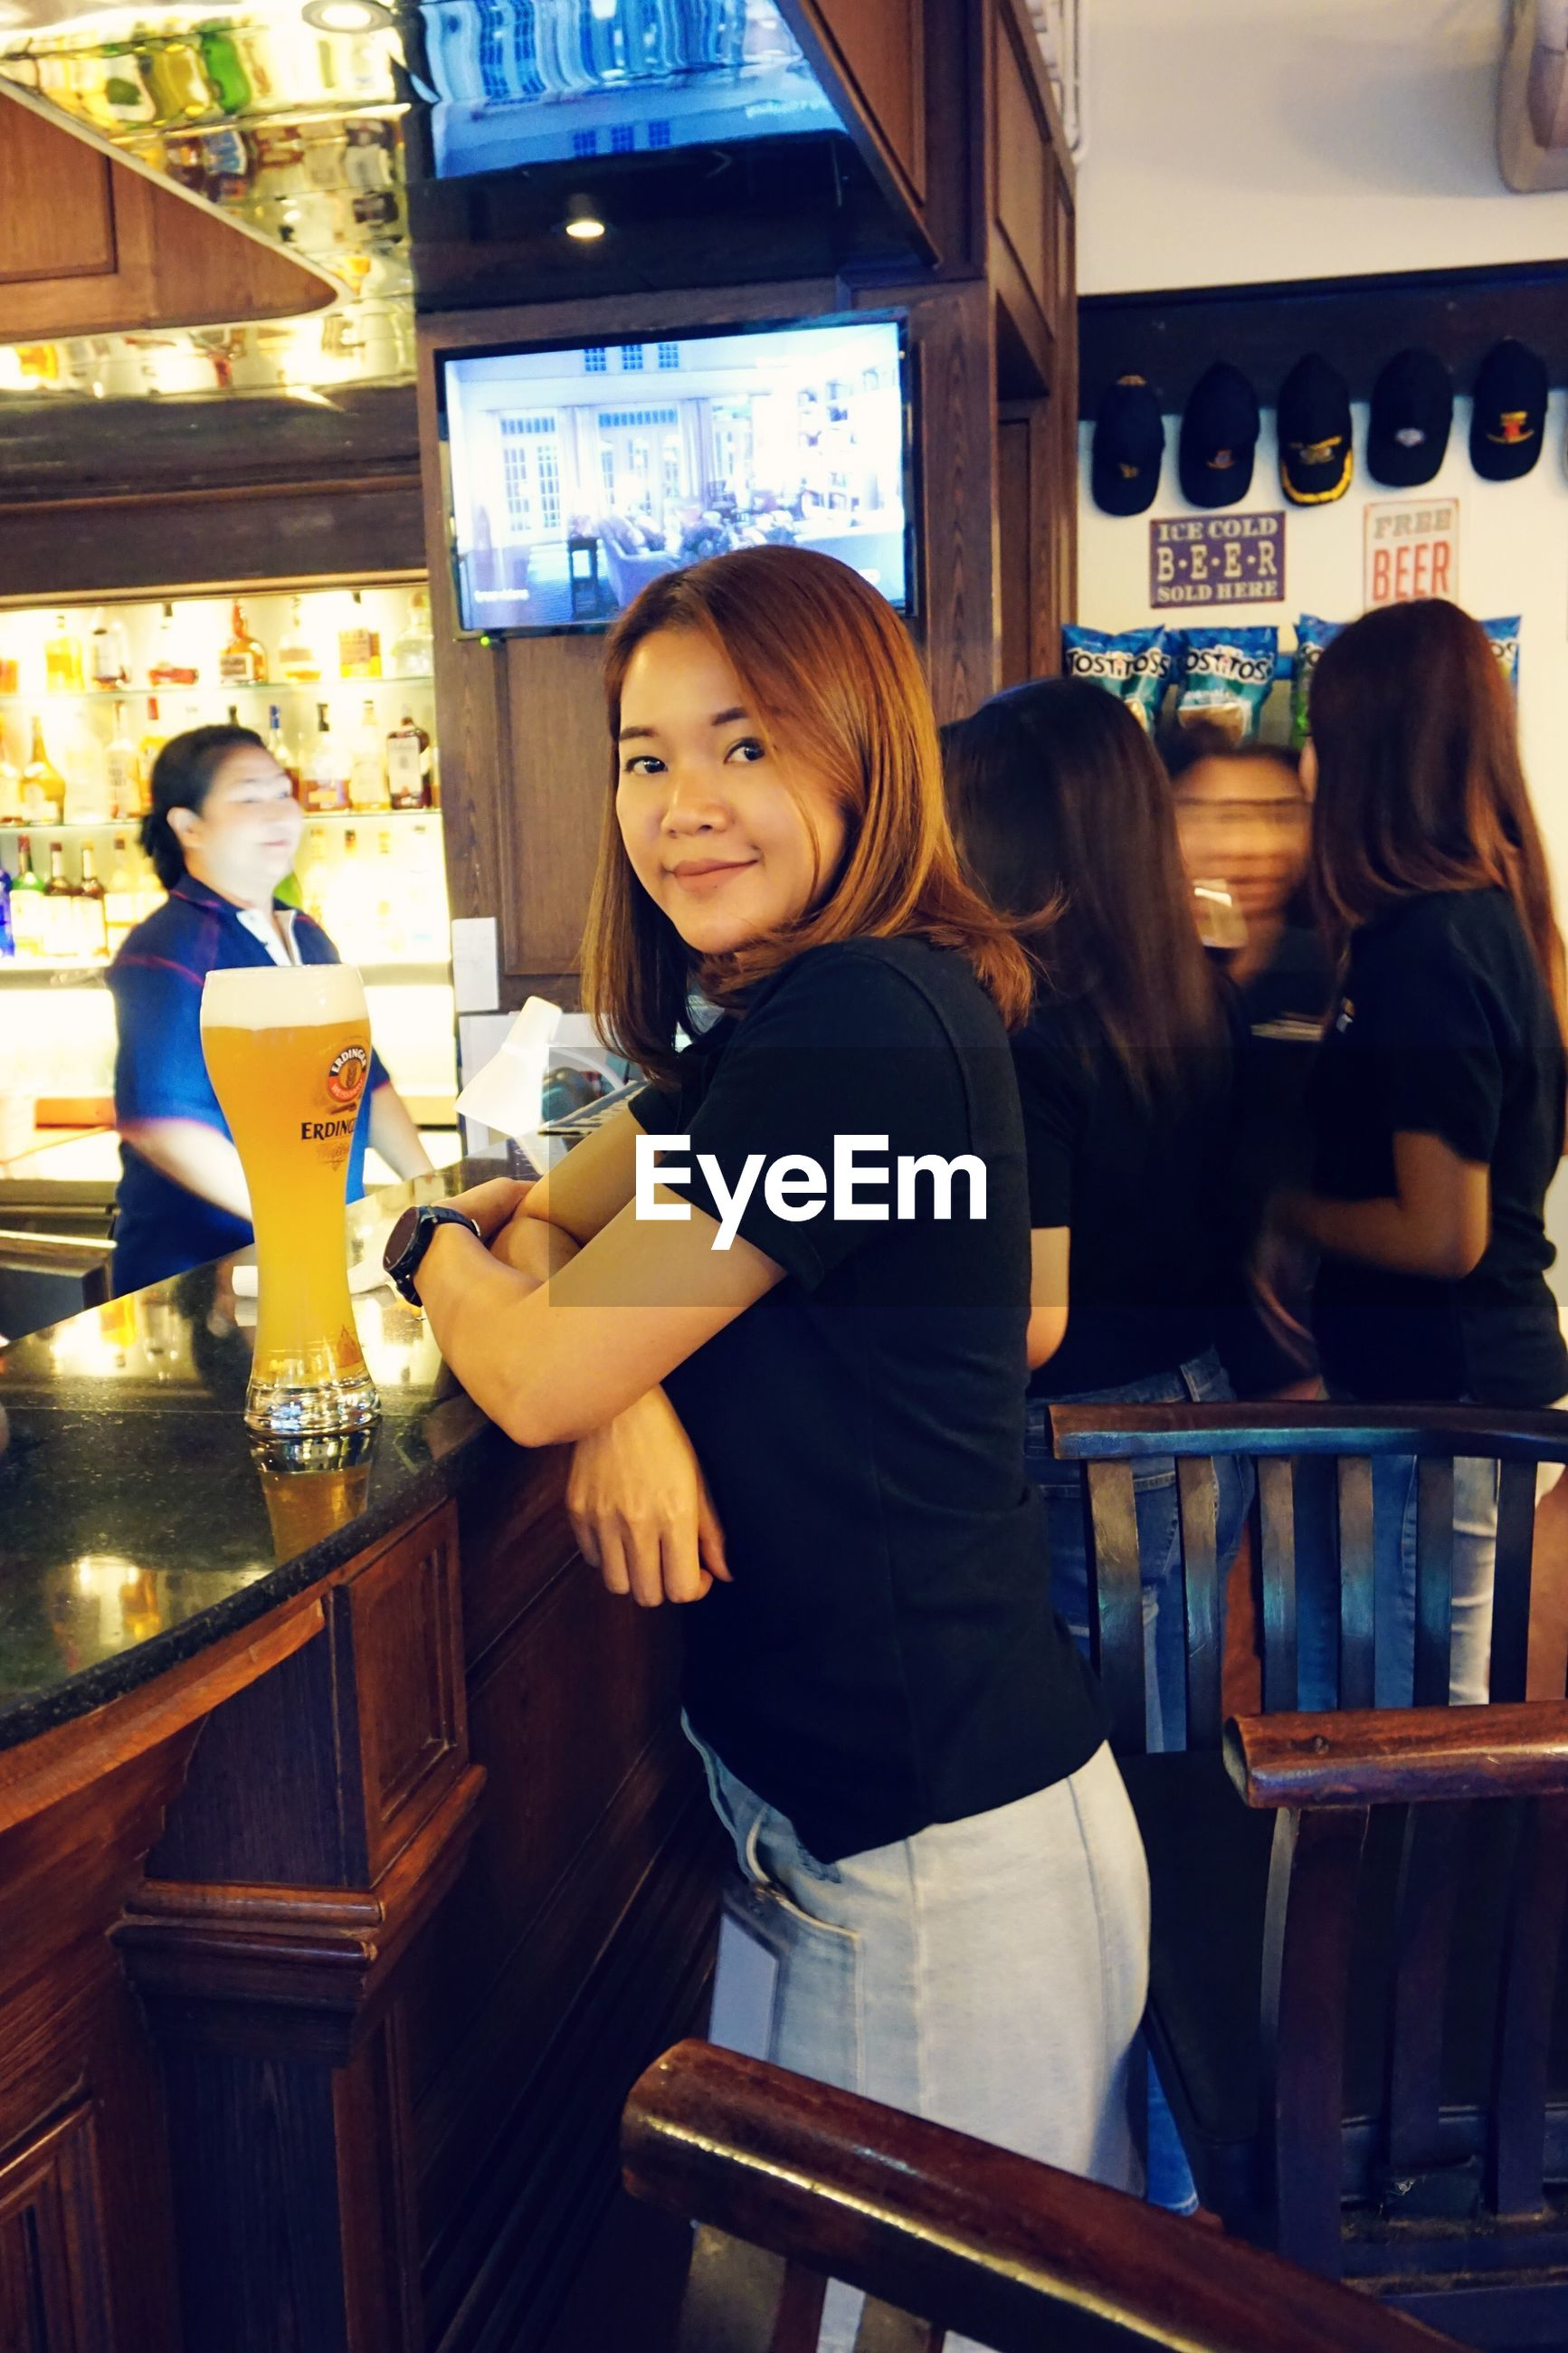 restaurant, bar counter, real people, food and drink, bar - drink establishment, smiling, standing, casual clothing, bartender, customer, indoors, cafe, young women, occupation, waitress, leisure activity, lifestyles, drink, happiness, young adult, service, two people, happy hour, day, freshness, people